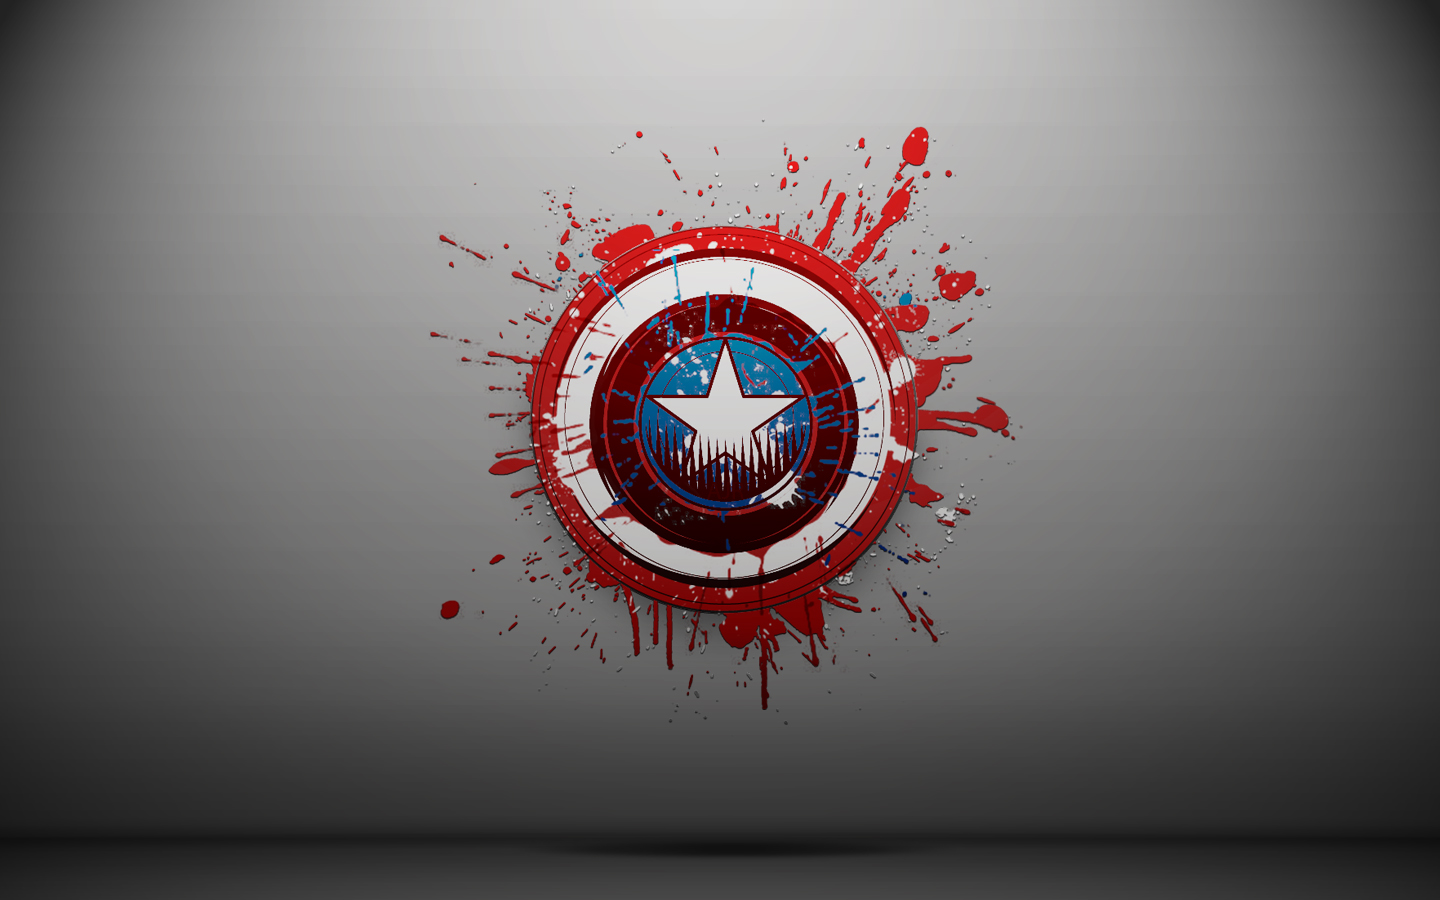 Captain America Shield Wallpapers HD And Screensaver cute Wallpapers 1440x900